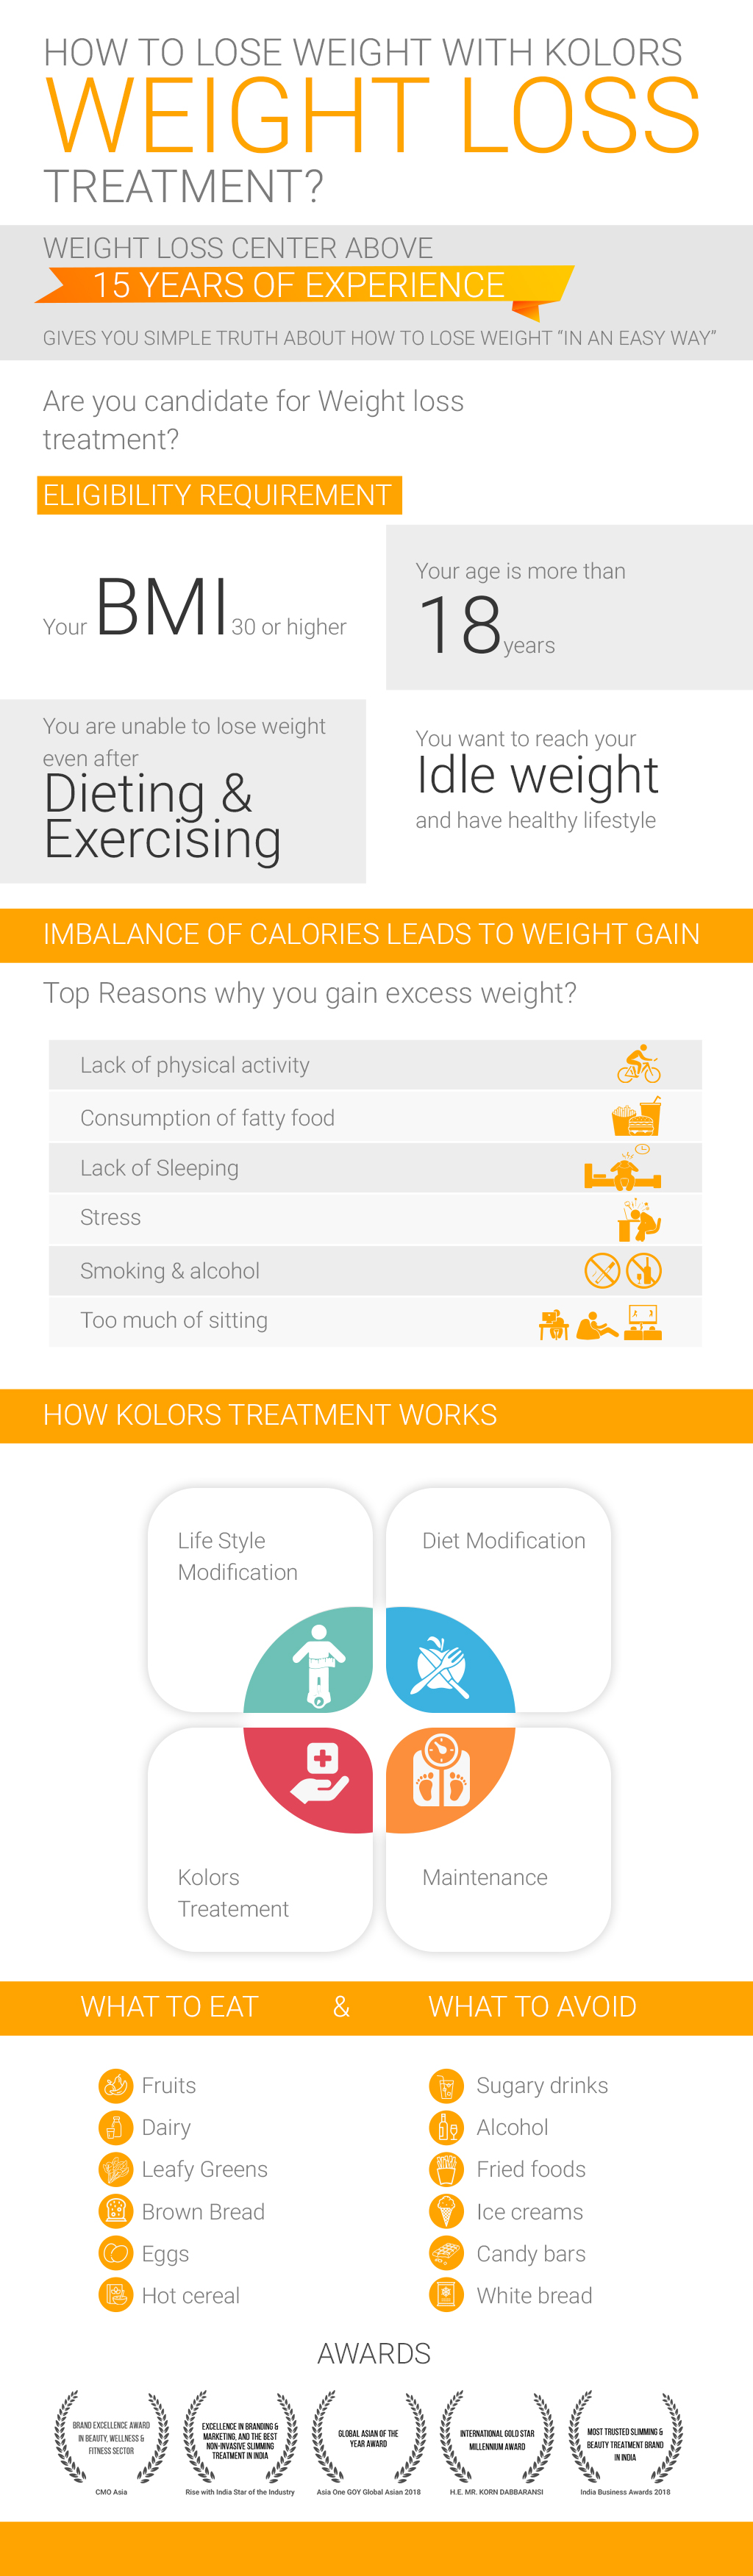 How Weight Loss Treatment Works